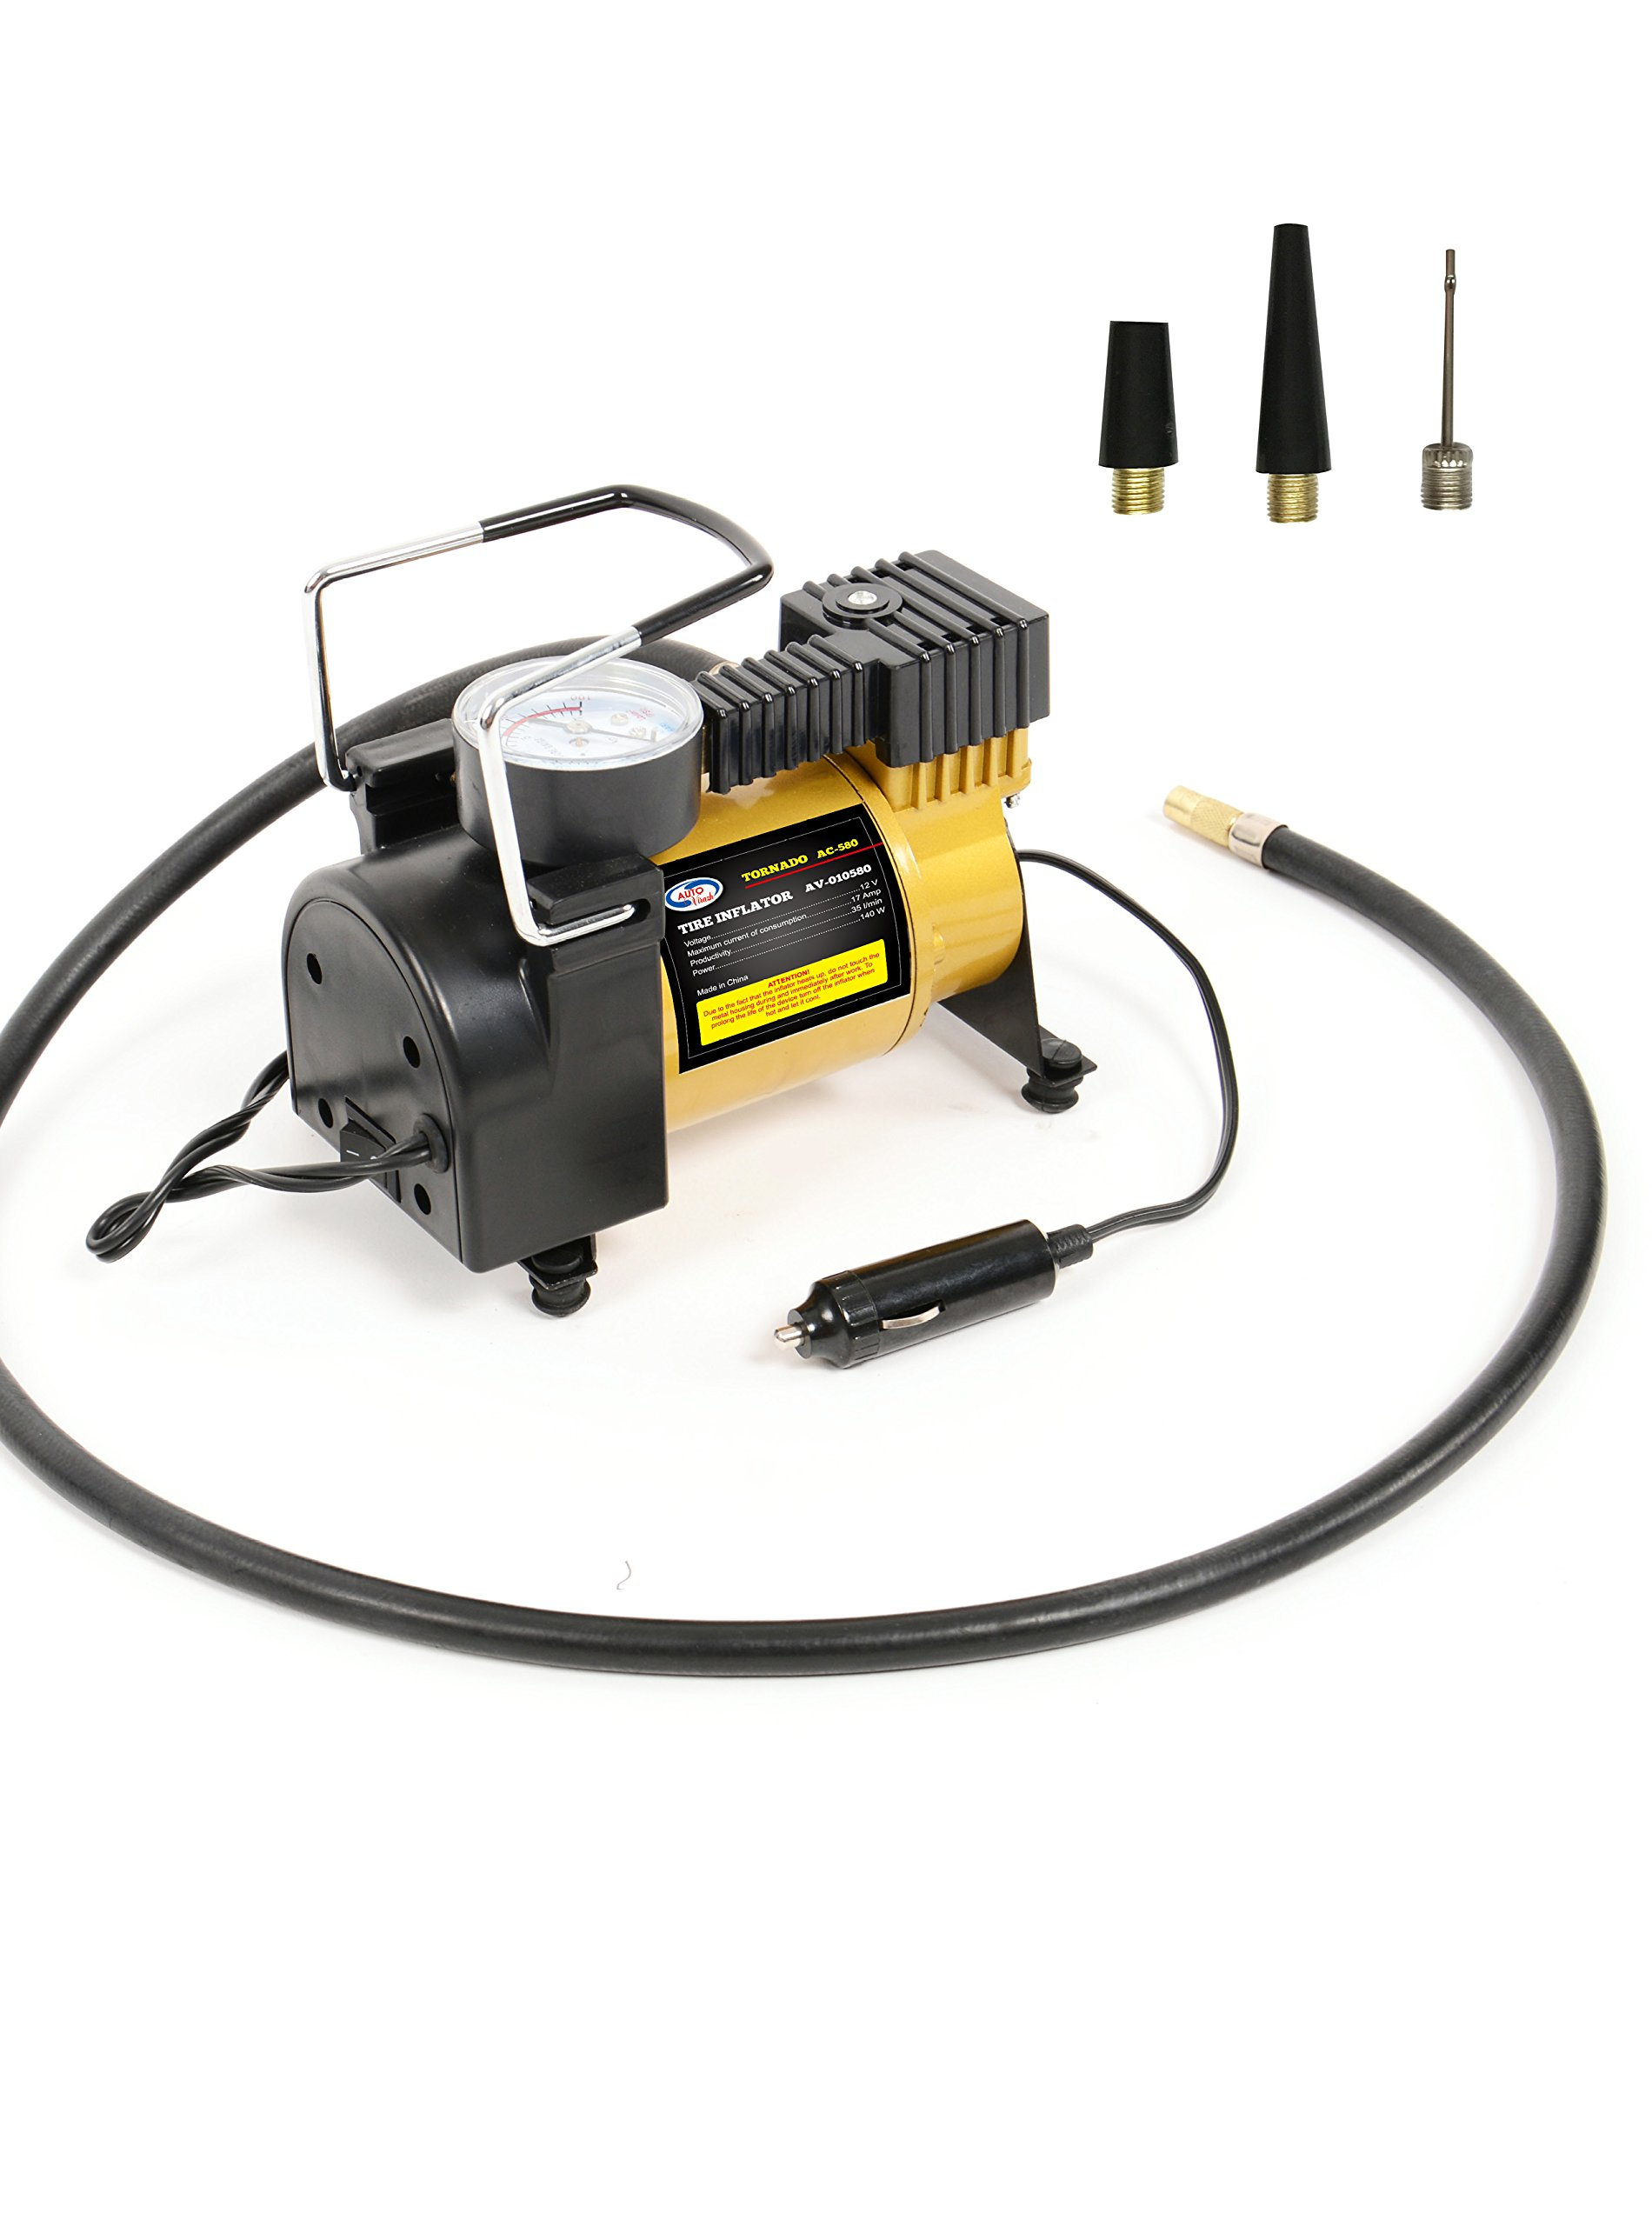 Portable Mini Air Compressor Pump: 12V Electric Car Tire Inflator with Pressure Gauge - Small Compressor Tanks with 3 Foot Hose & 3 Universal Nozzle Adapters for Automobiles, Bike Tires & Inflatables